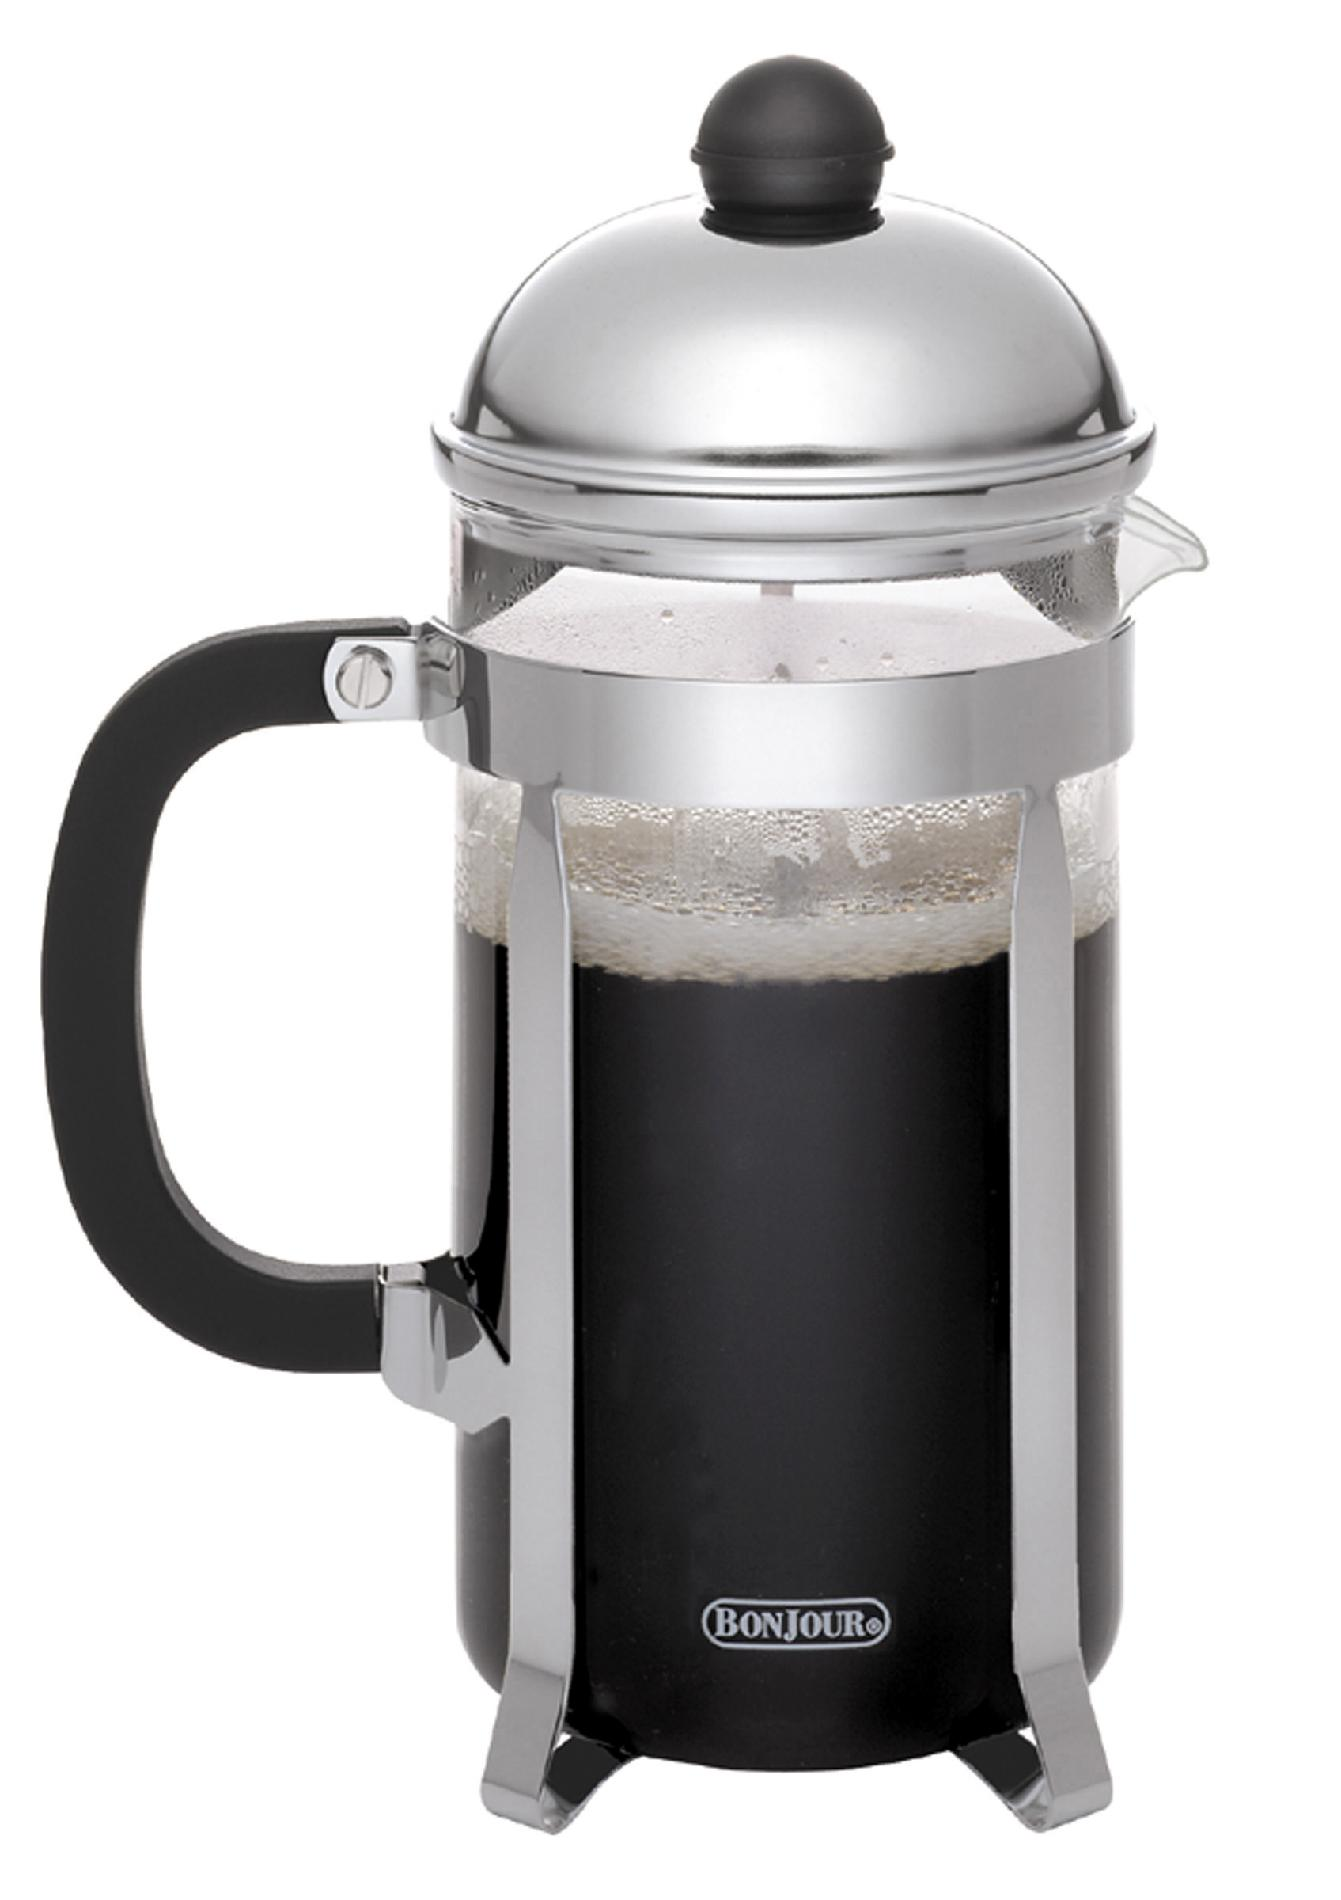 BonJour Coffee 12 Cup French Press in Stainless Steel PartNumber: 00884298000P